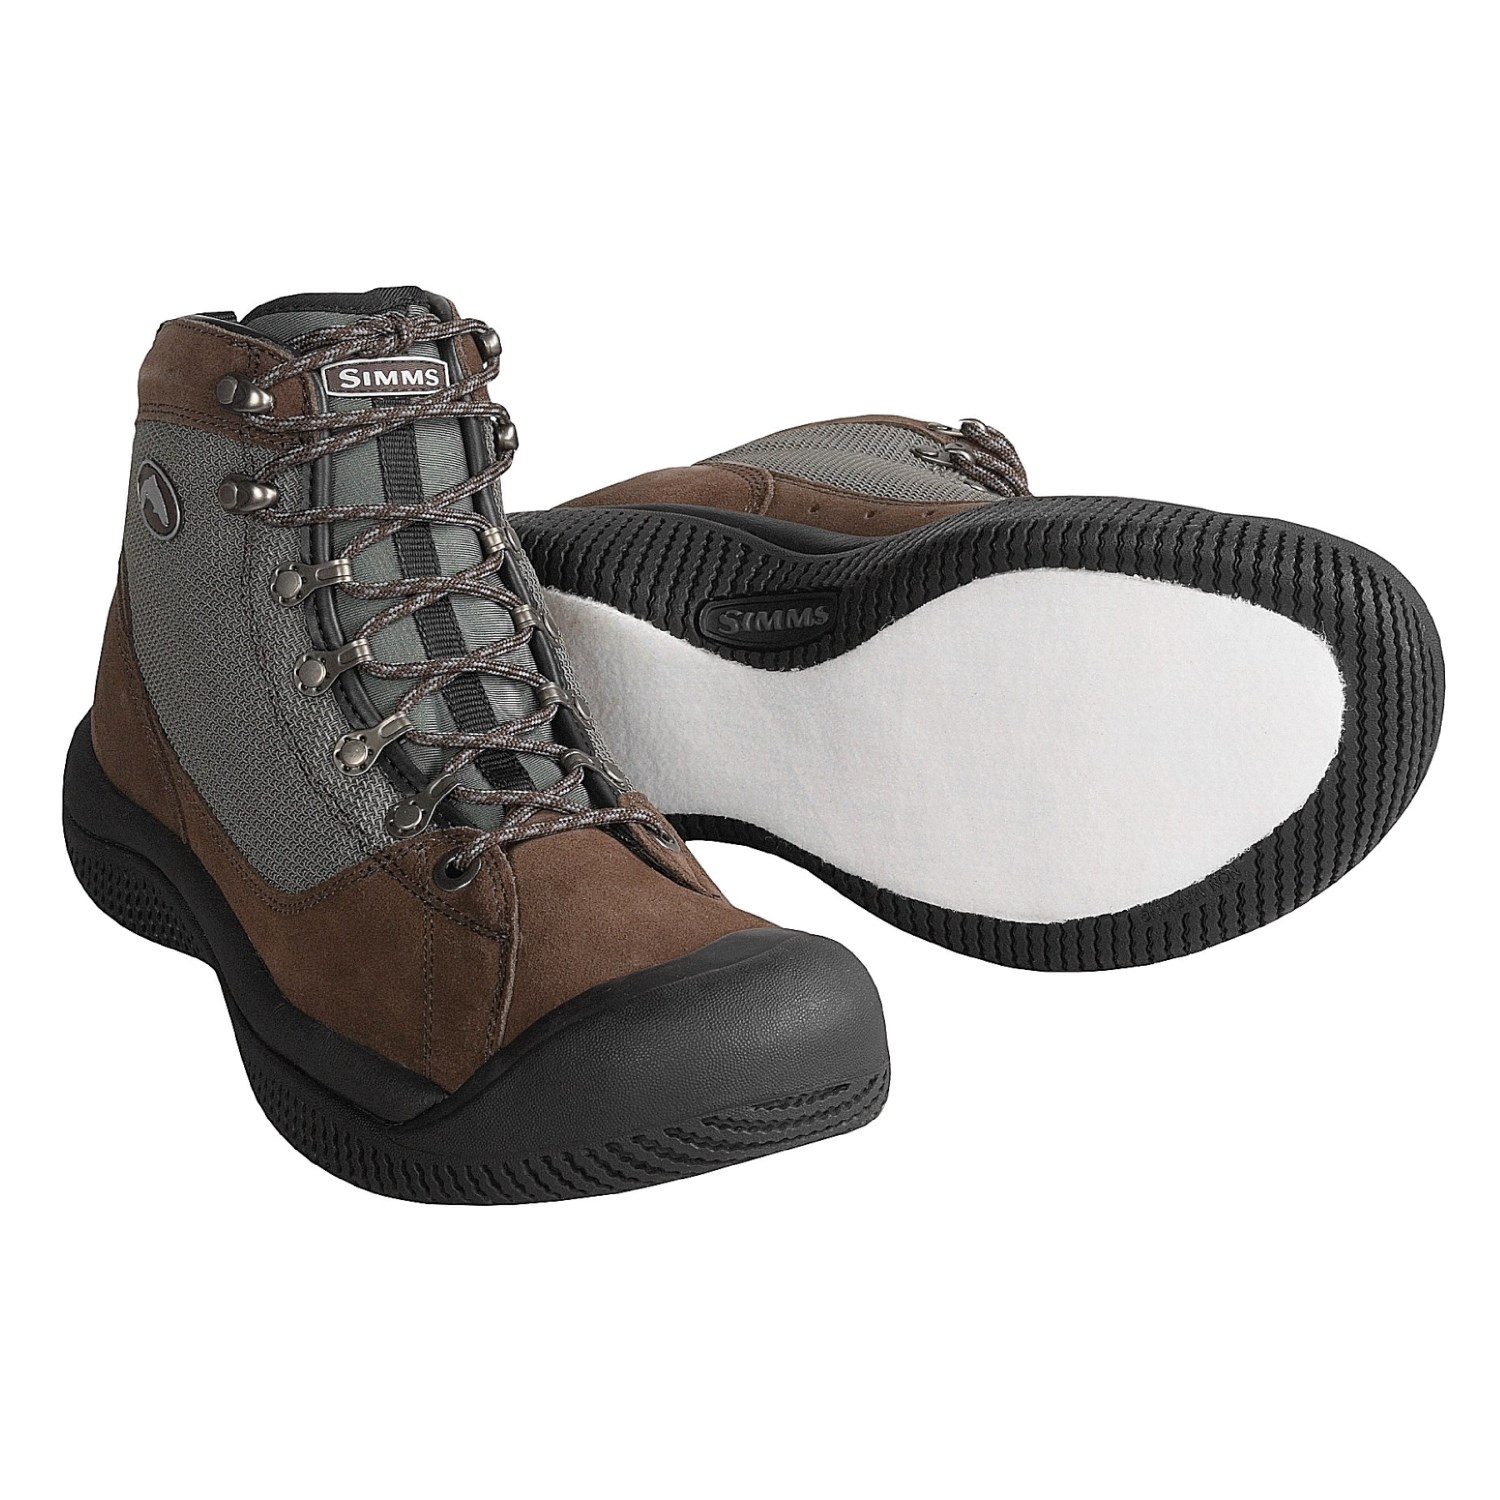 Wet Wading Shoes Reviews